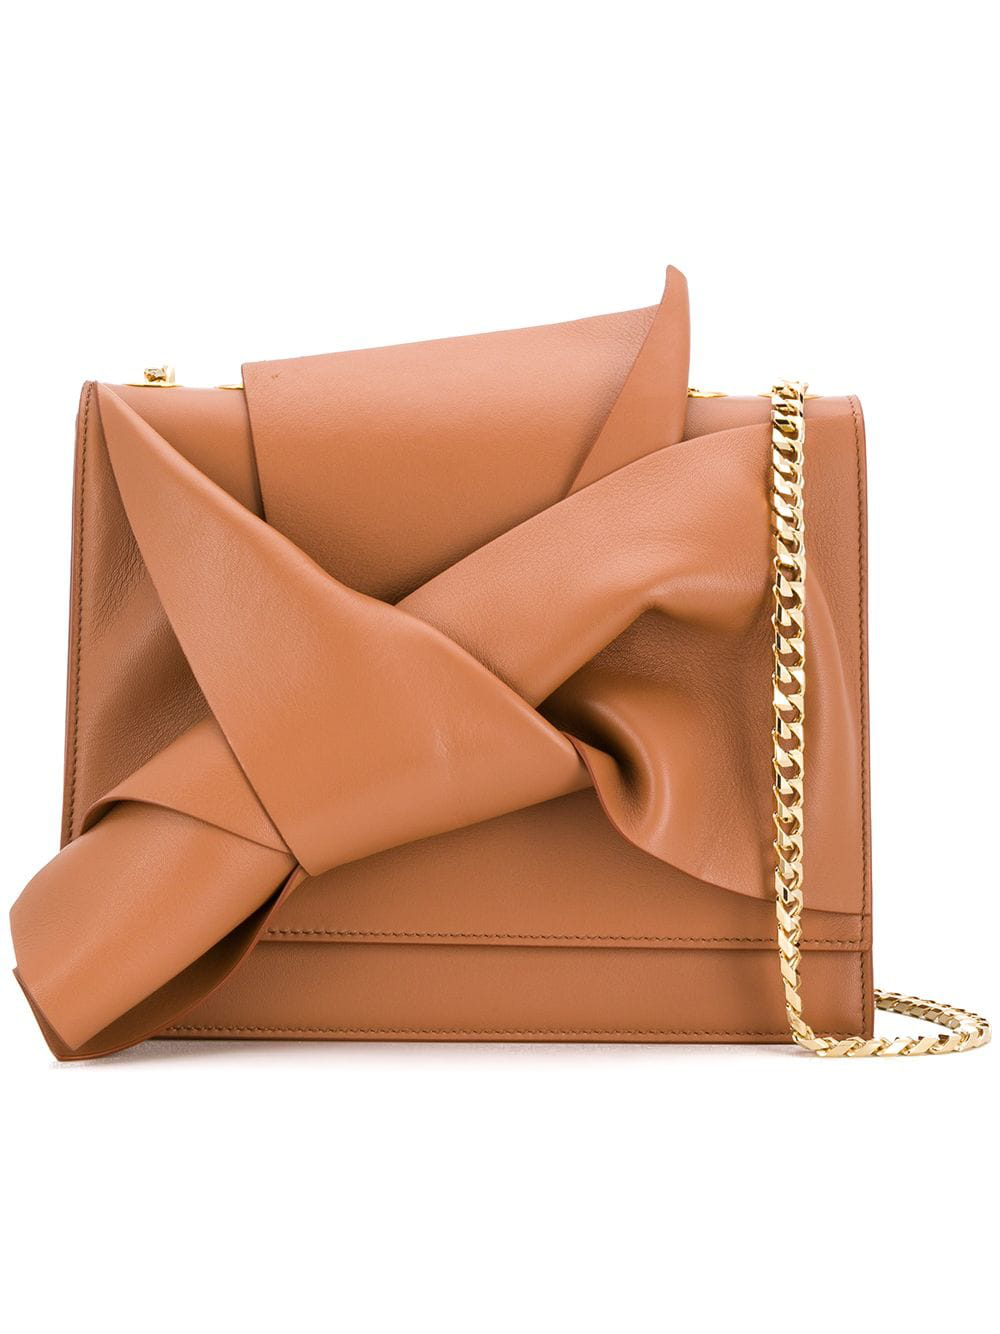 N°21 Nº21 Knot Detail Shoulder Bag - Brown